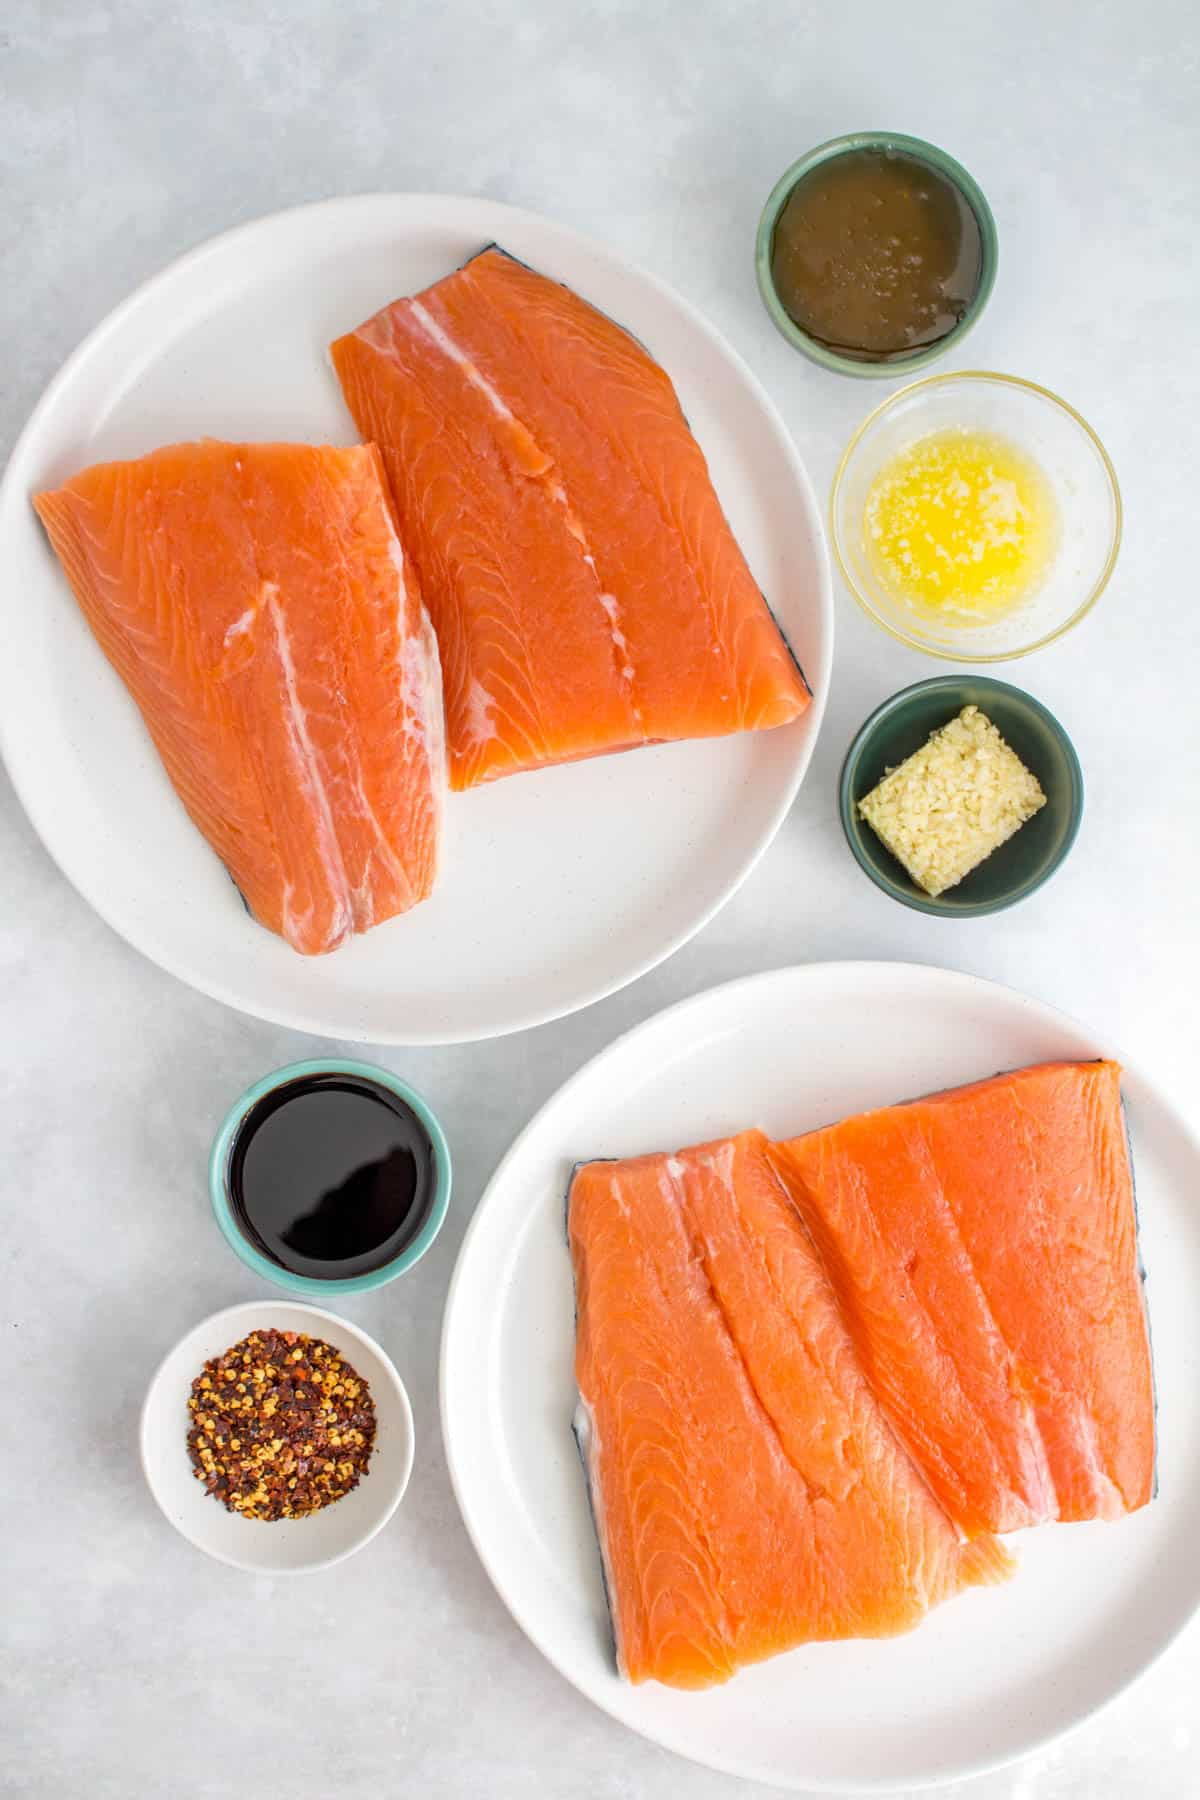 Ingredients needed to make sweet chili salmon.